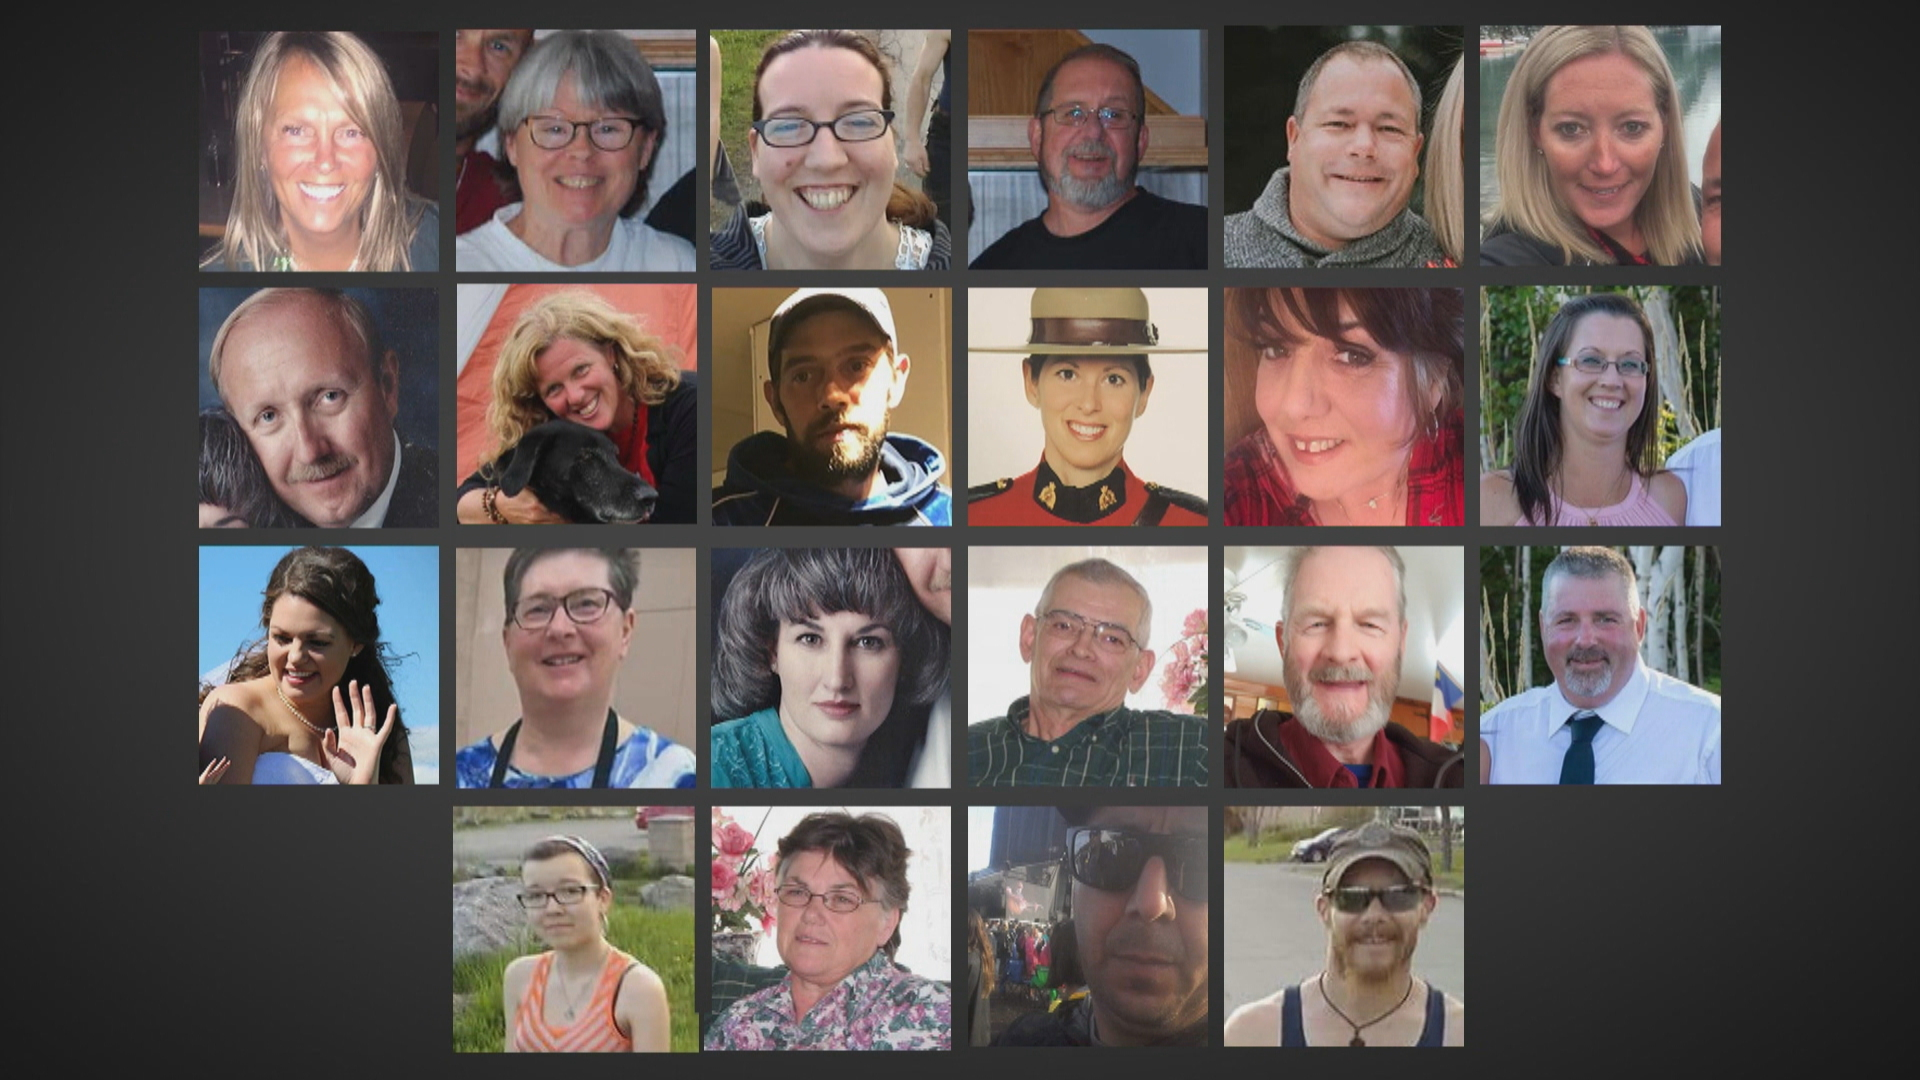 Seven months later, many families of 22 victims who were killed in Canada's largest mass shooting struggle with what they say is a lack of information from the RCMP. (CBC)